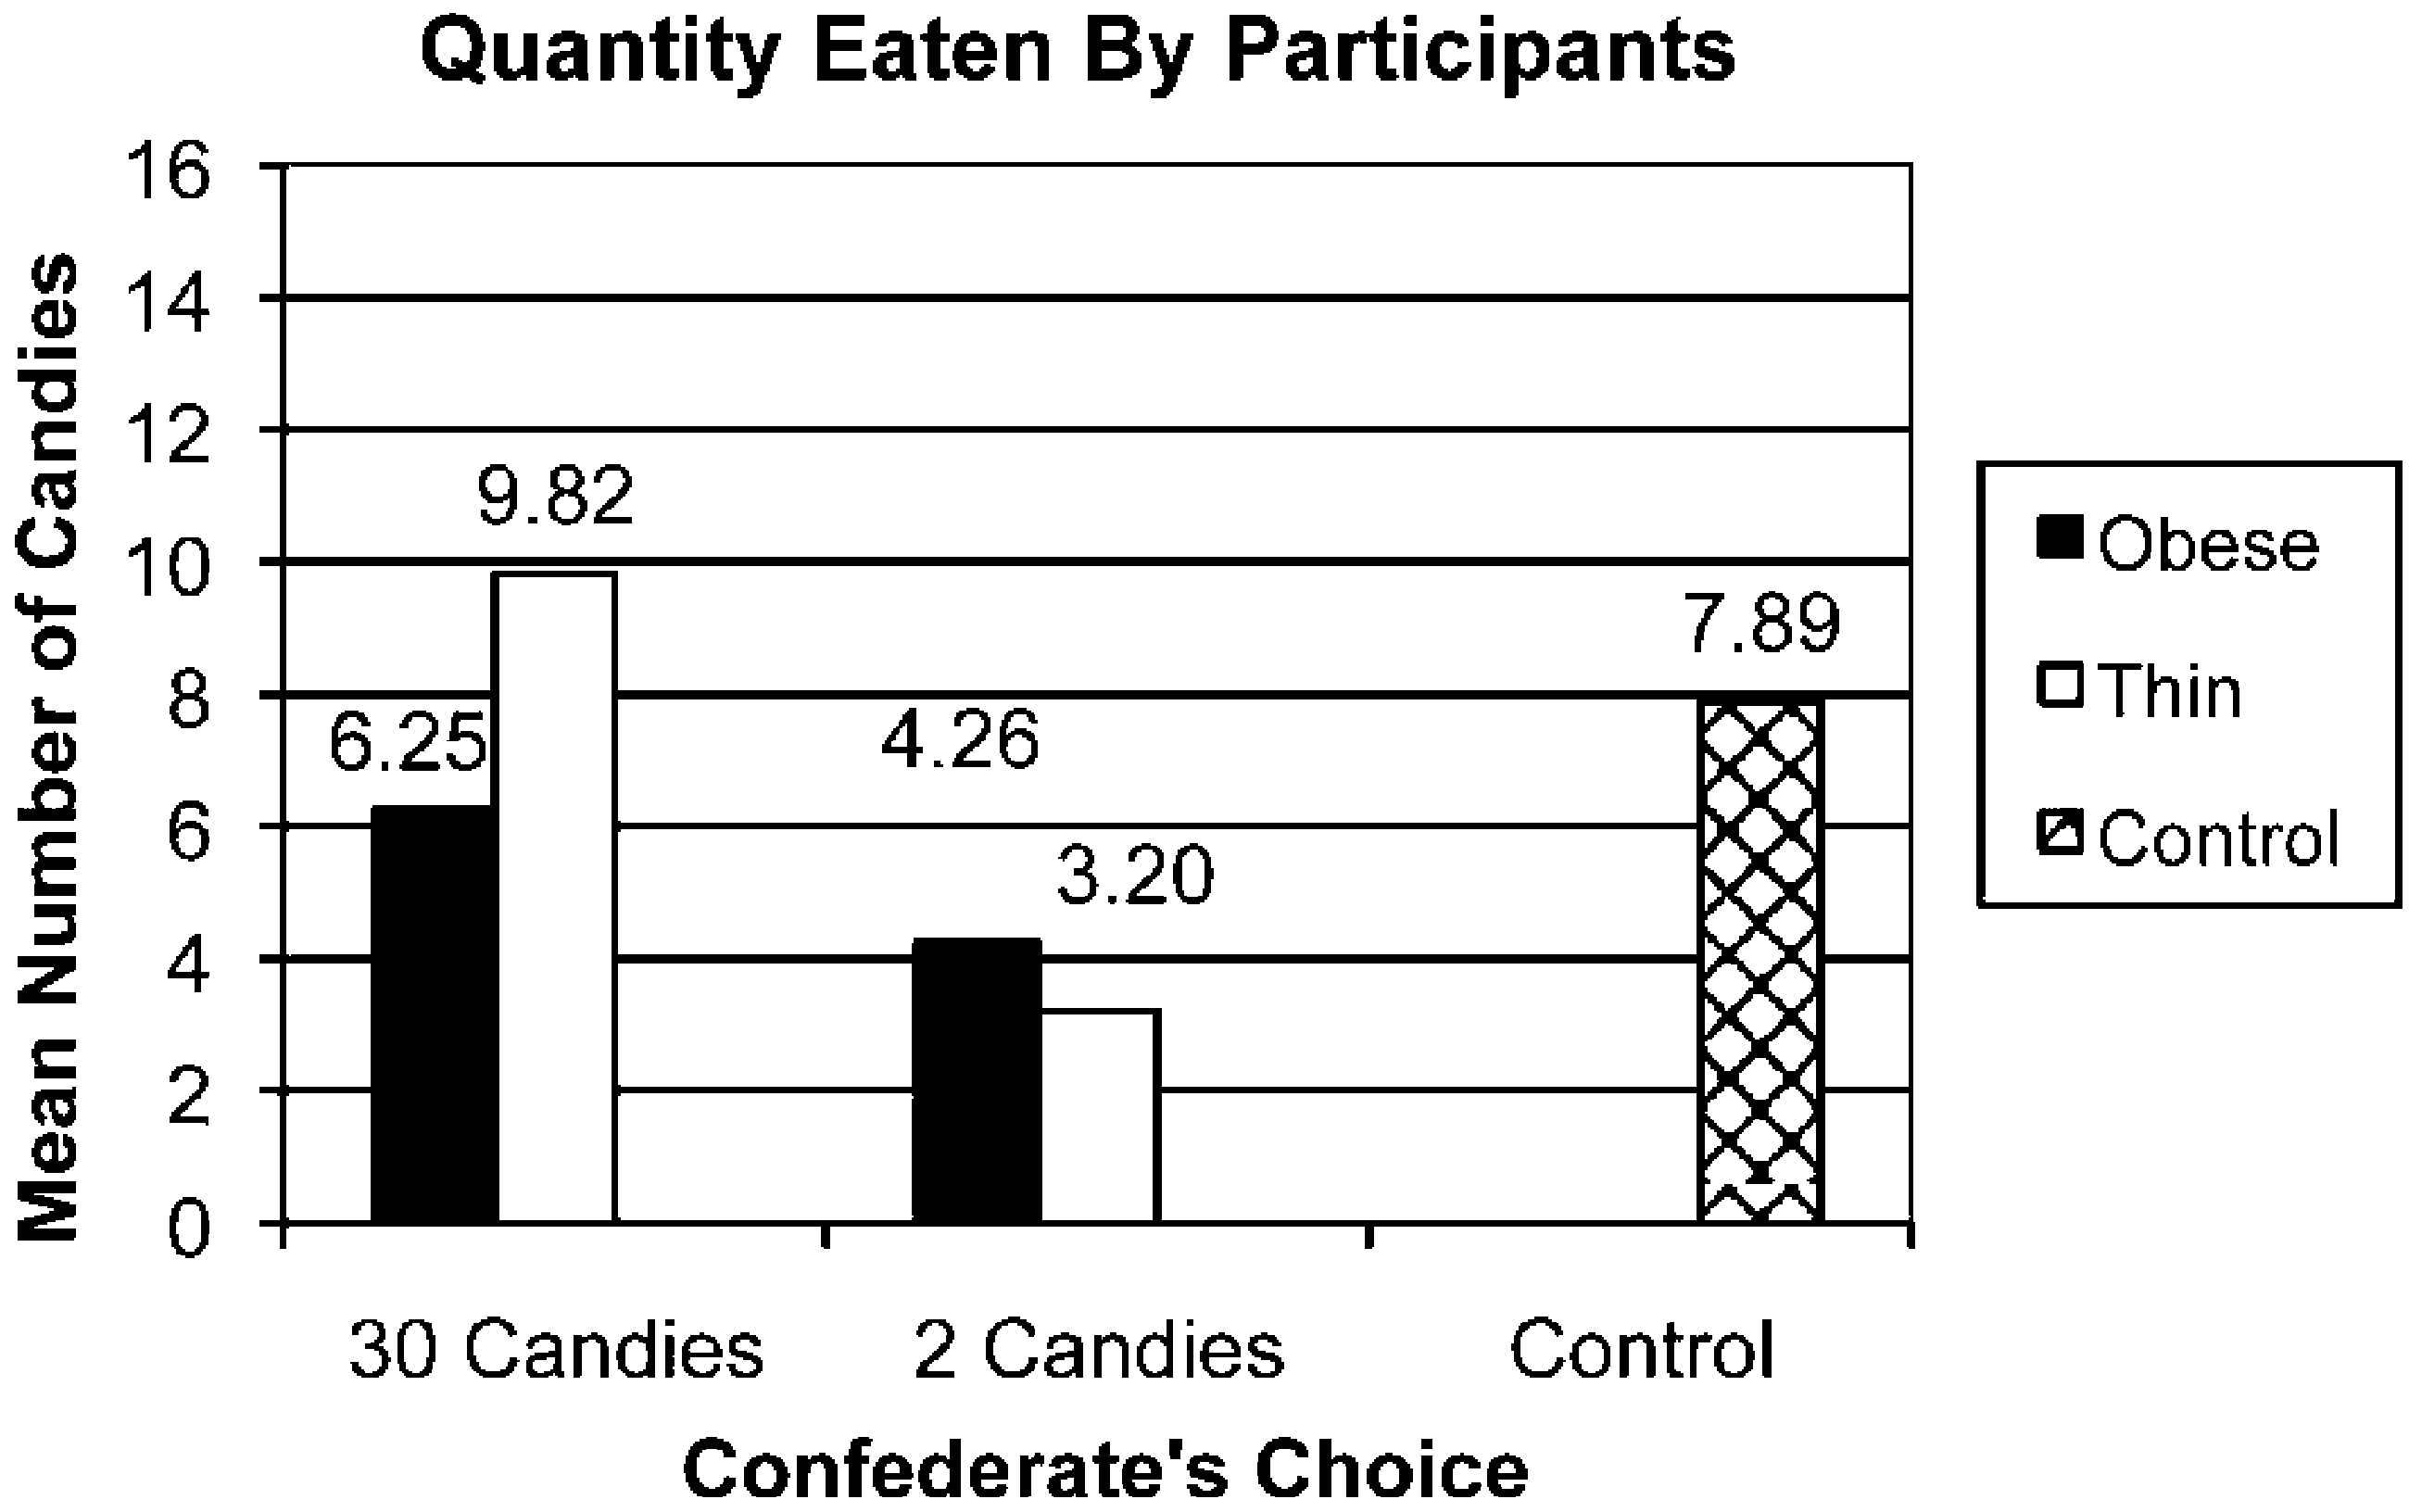 PROOF 8 when she took two candies, the opposite pattern emerged: participants took a greater quantity when the confederate was obese (M p 5.43) than when she was thin (M p 4.04; F(1, 44) p 4.22, p!